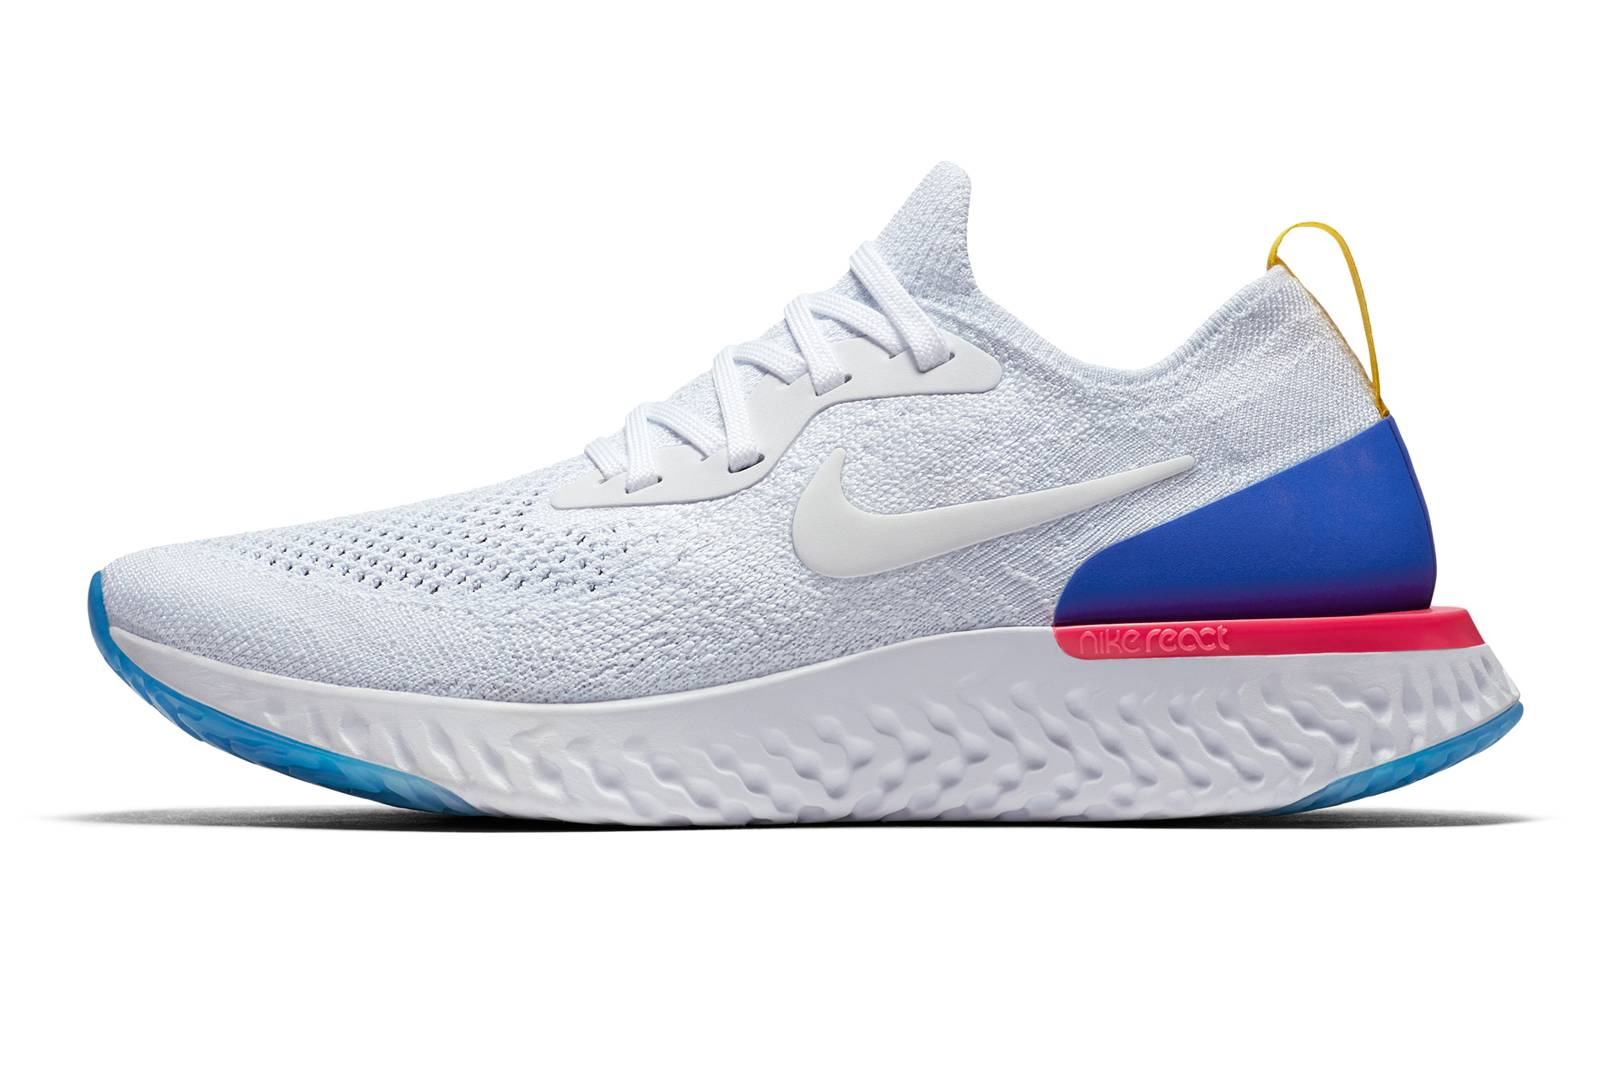 Nike Running Shoes: Features and Benefits